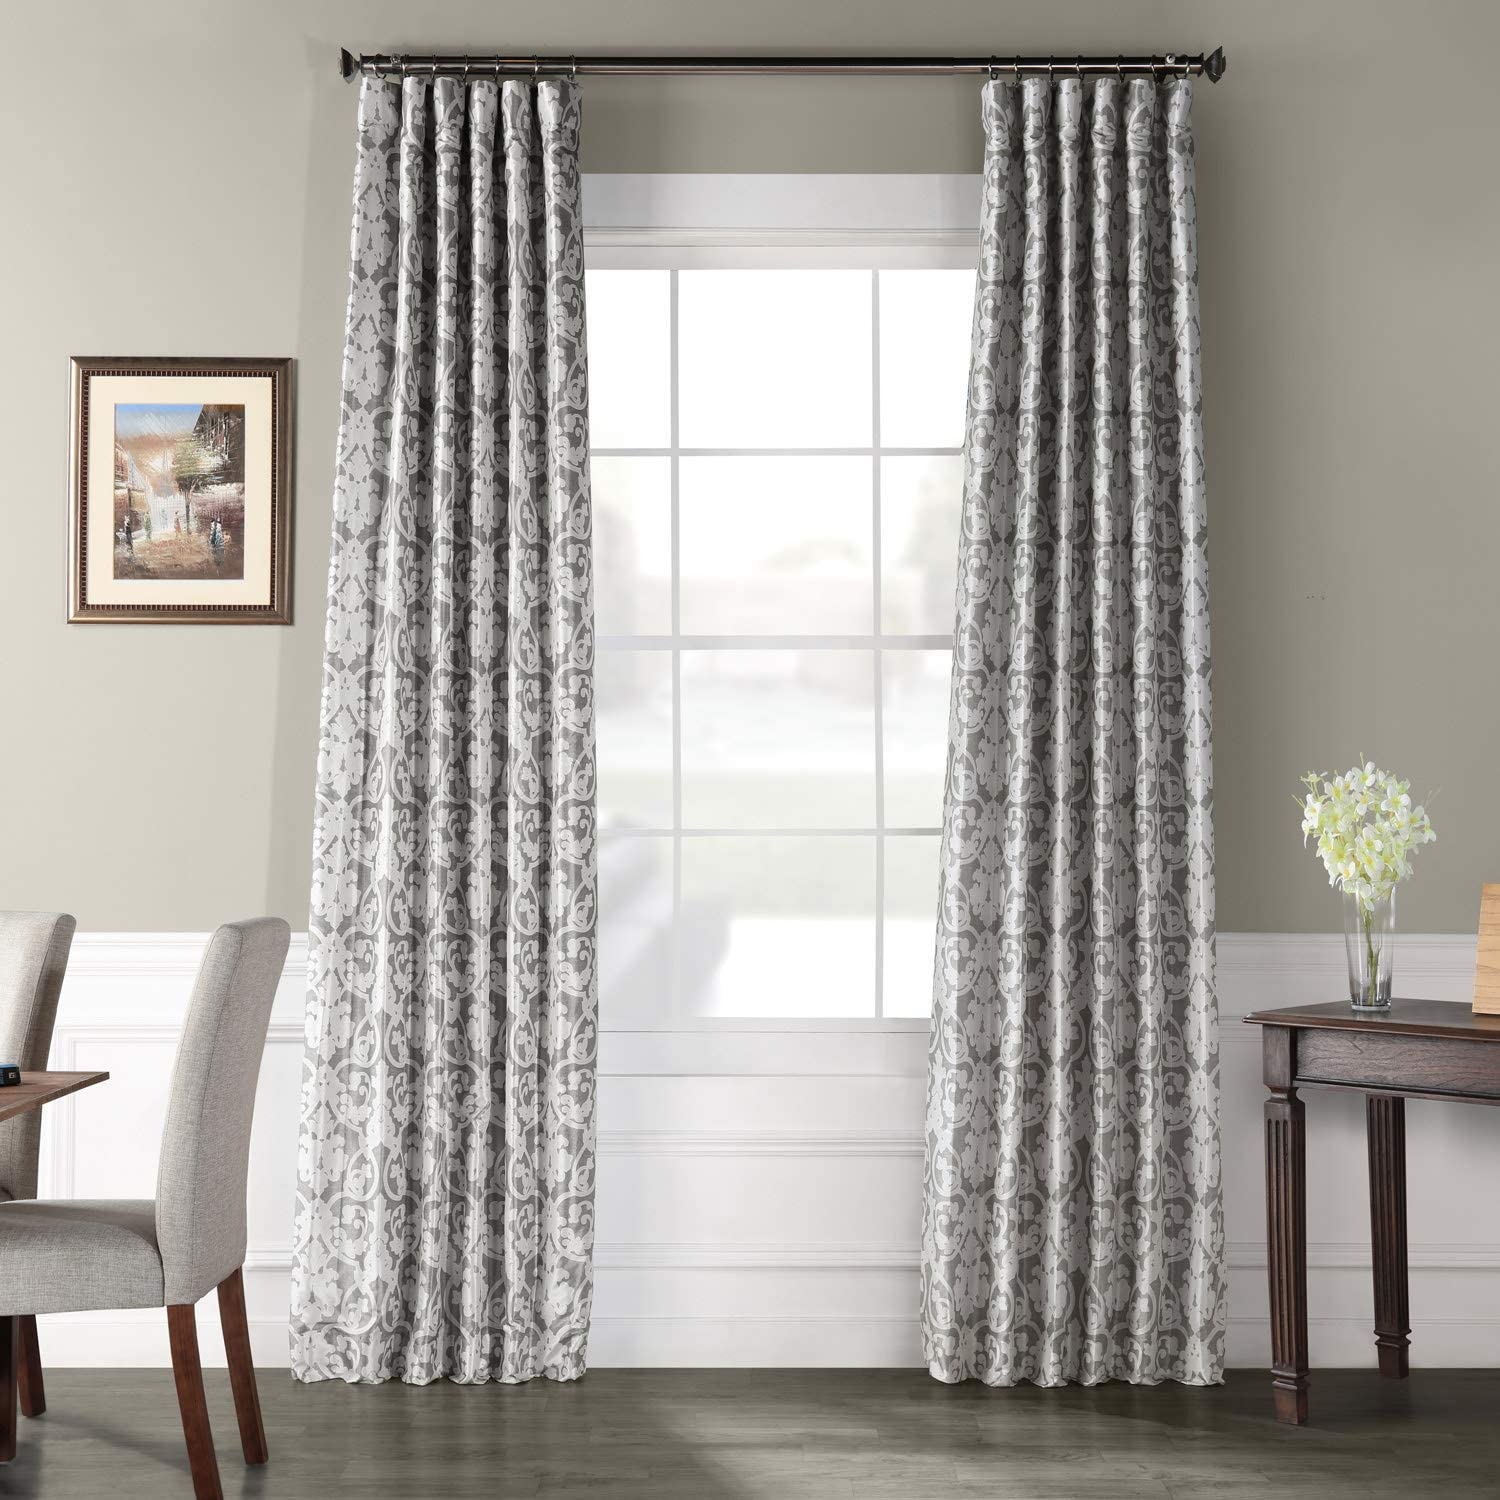 Ptpch-170806B-108 Rococo Printed Faux Silk Taffeta Blackout Curtain, 50 x 108, Grey